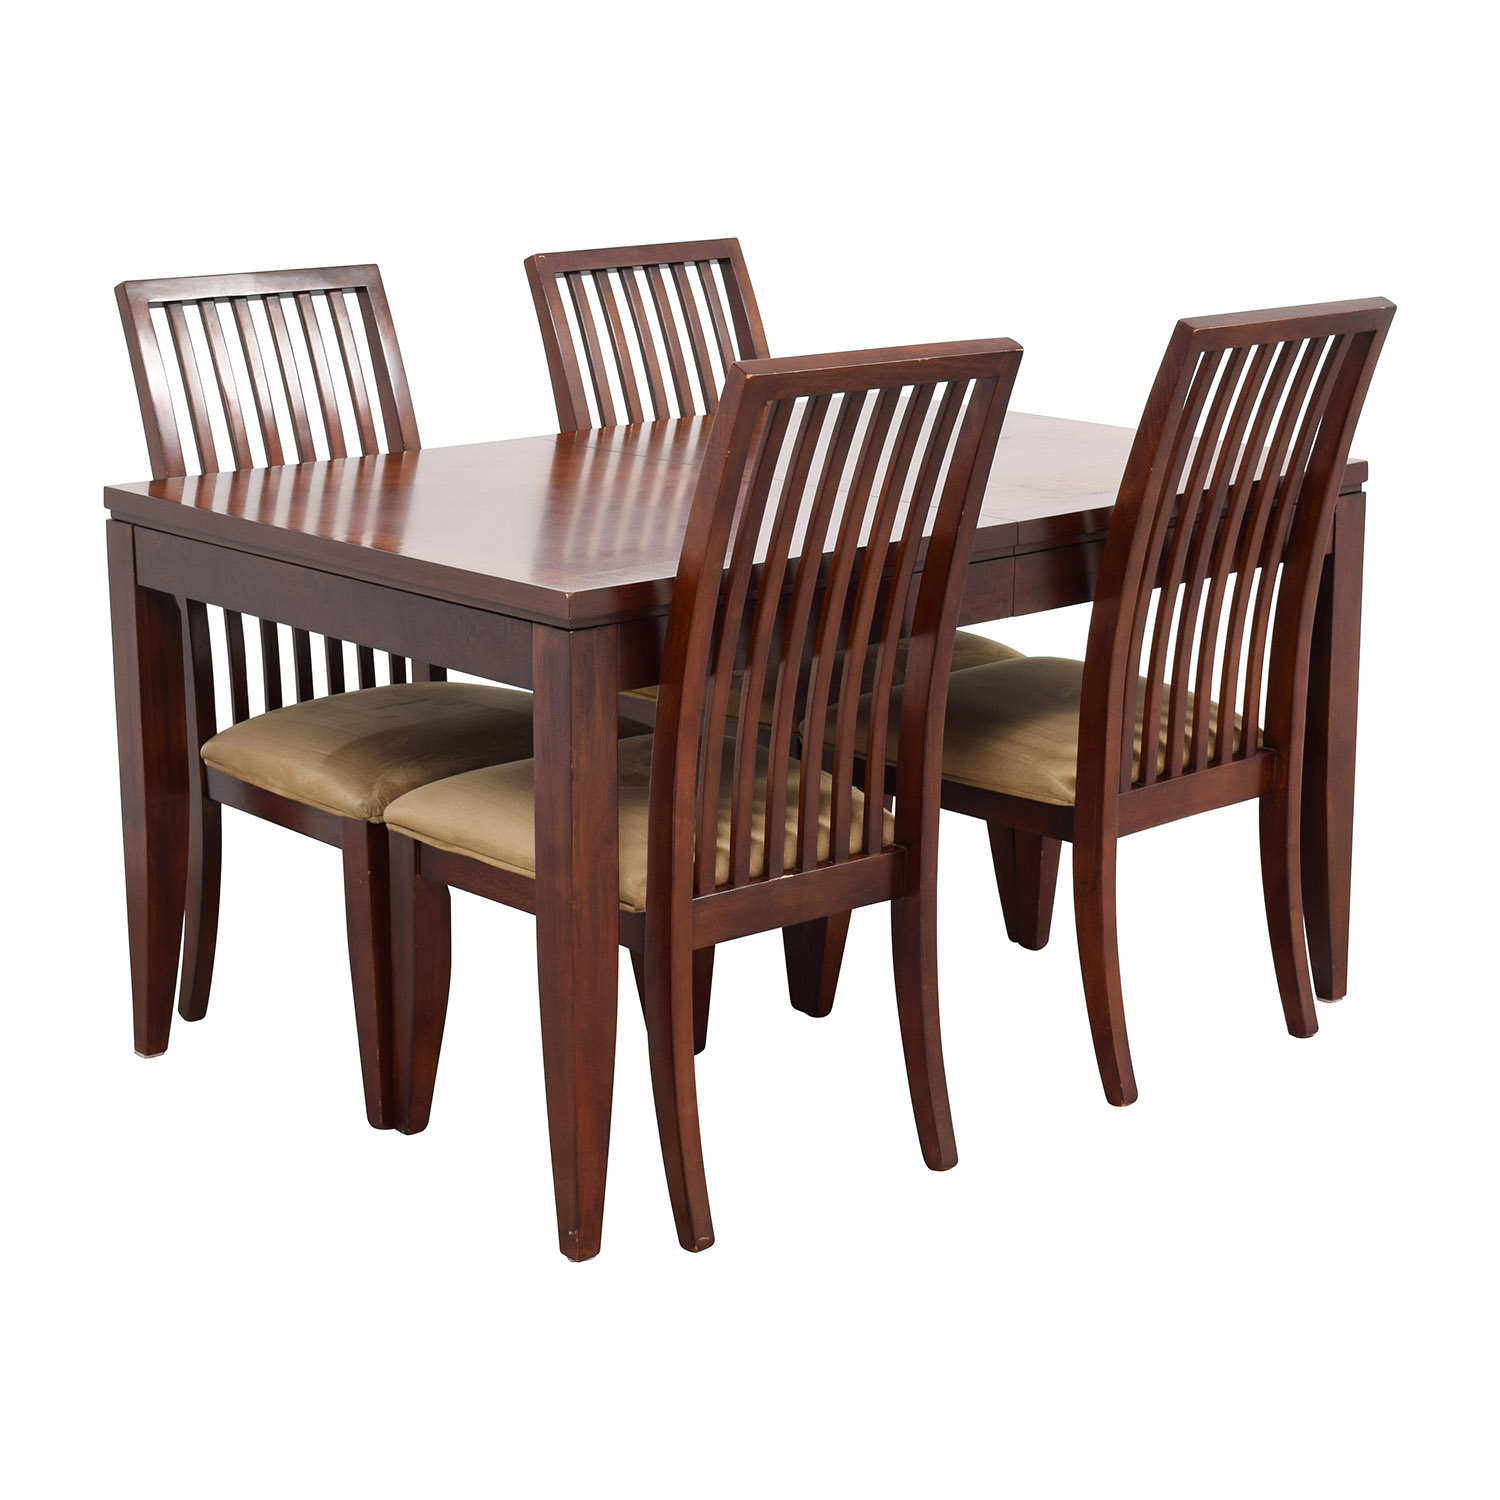 Superb ... Macys Macys Metropolitan Dining Set With Four Chairs Brown ...